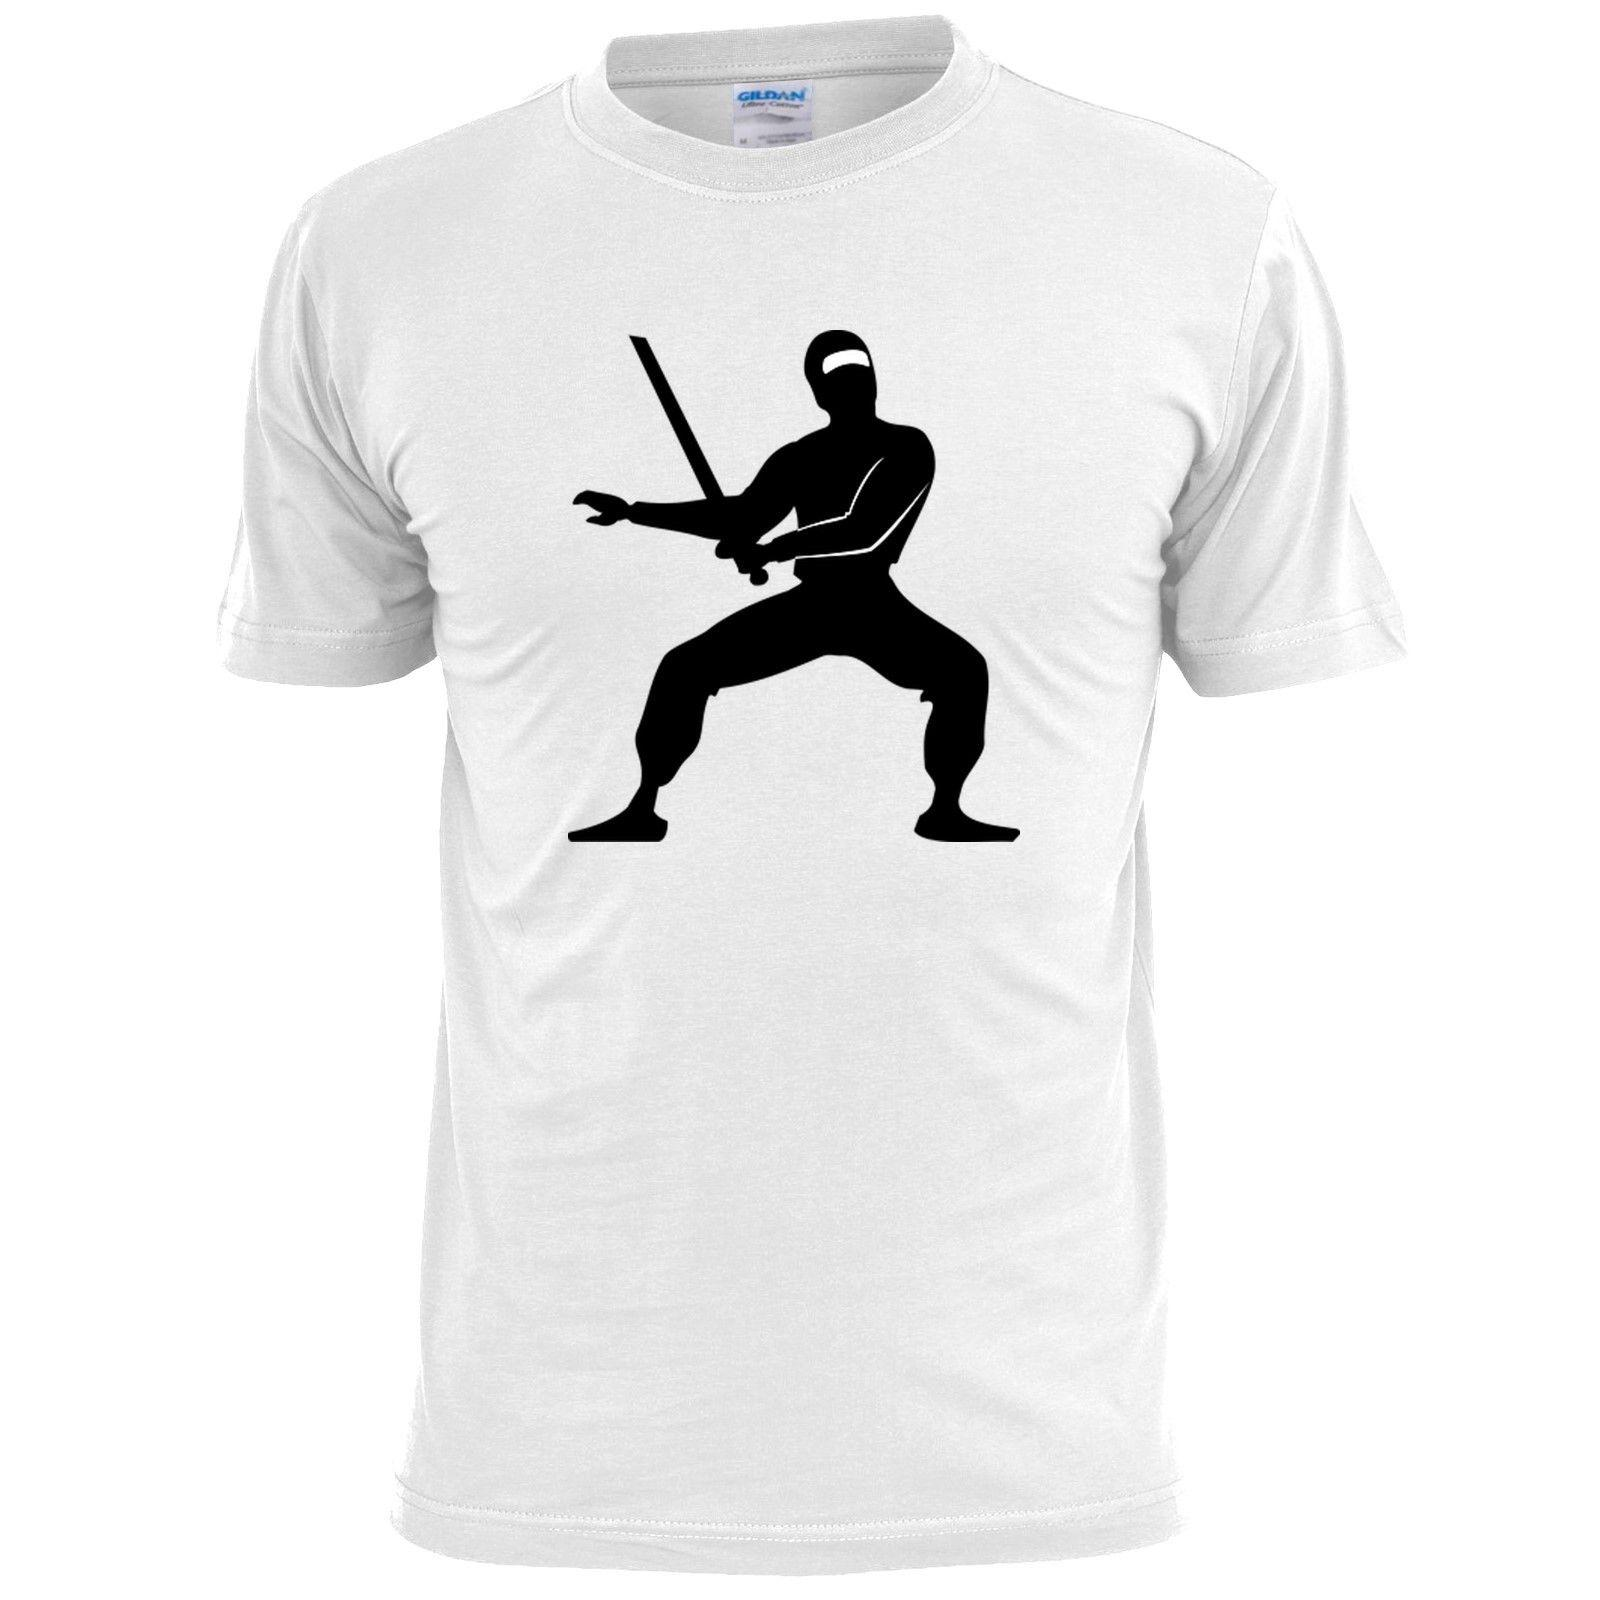 b4ebc821e5a NINJA SILHOUETTE MENS T SHIRT MARTIAL ARTS New Short Sleeve Round Collar Mens  T Shirts Fashion 2018 Nerd T Shirts Design Shirt From Viptshirt